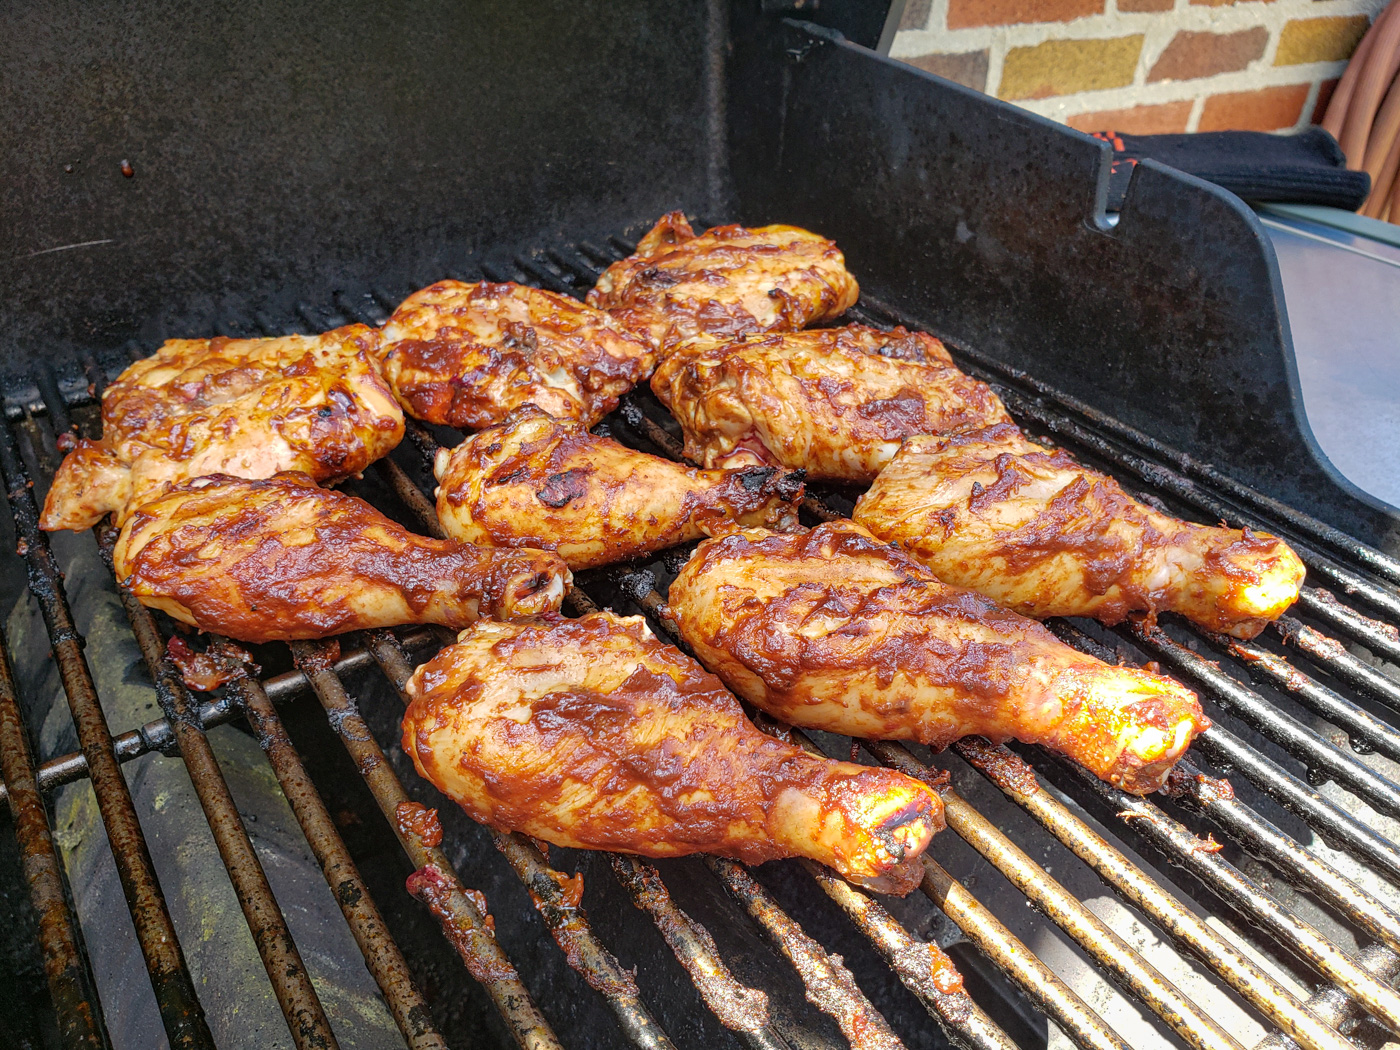 Grilling Chicken on Memorial Day